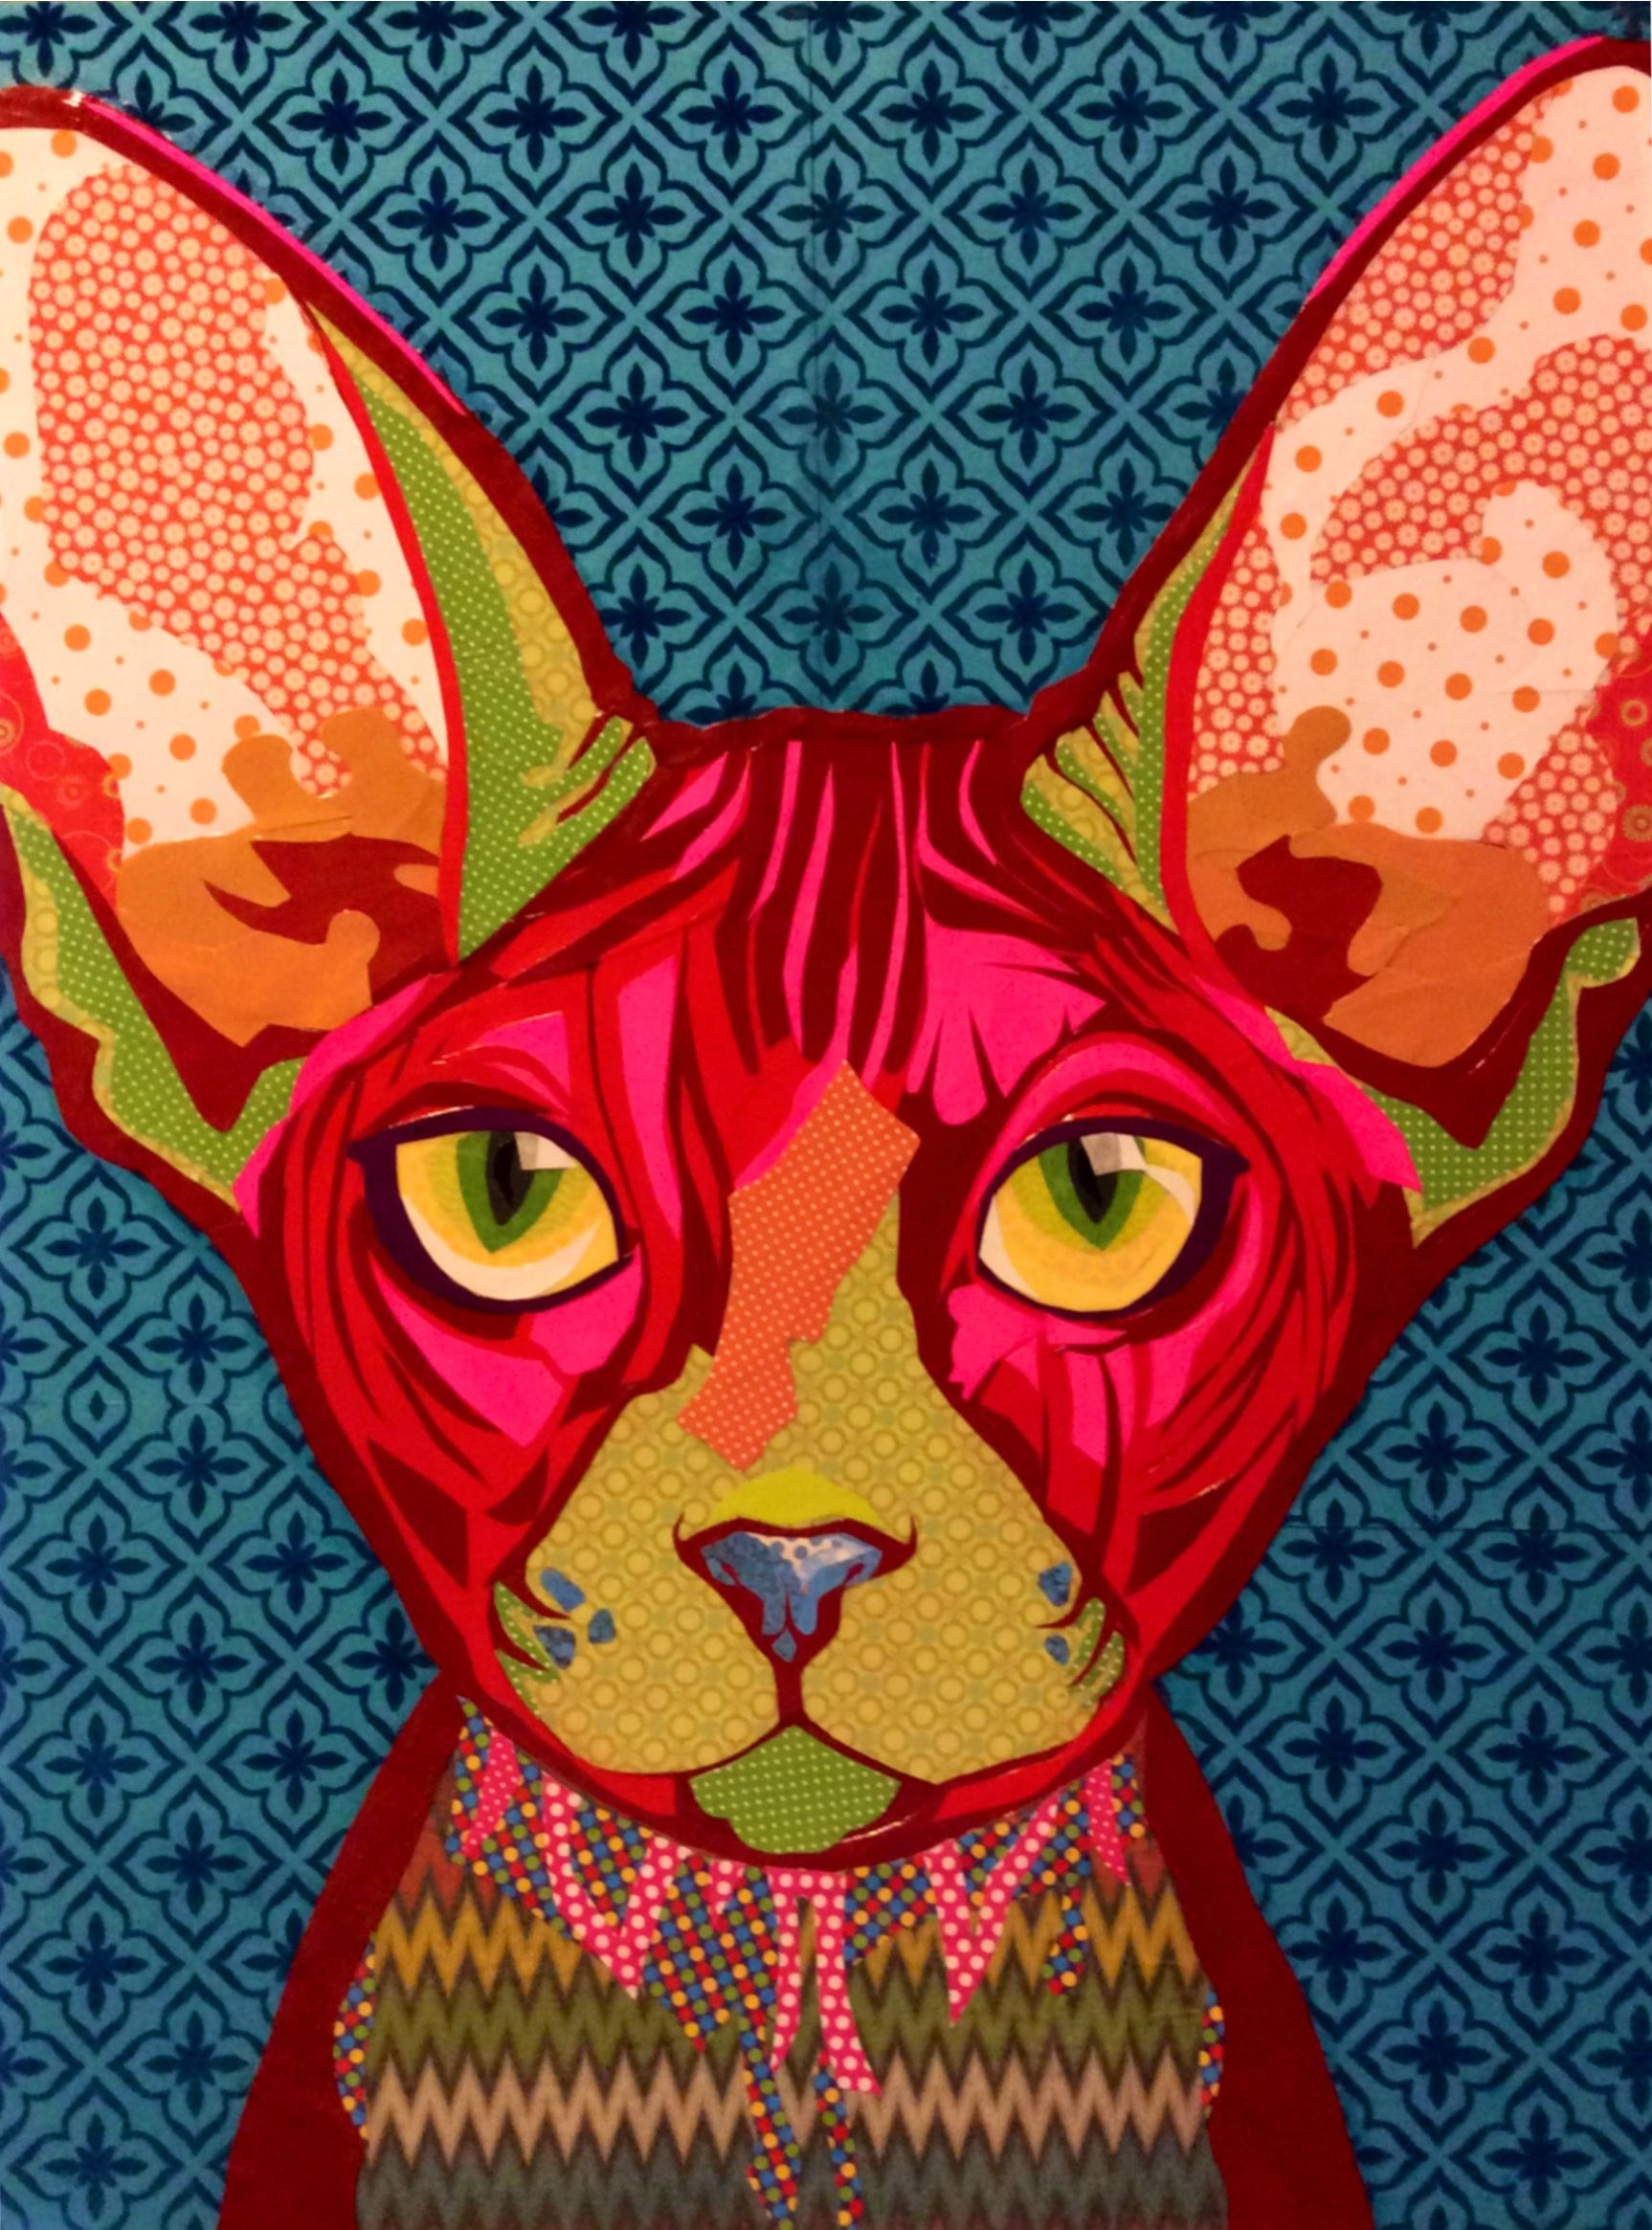 Scrapbook paper collage - Scrapbook paper collage art collage art pink sphynx by laura yager